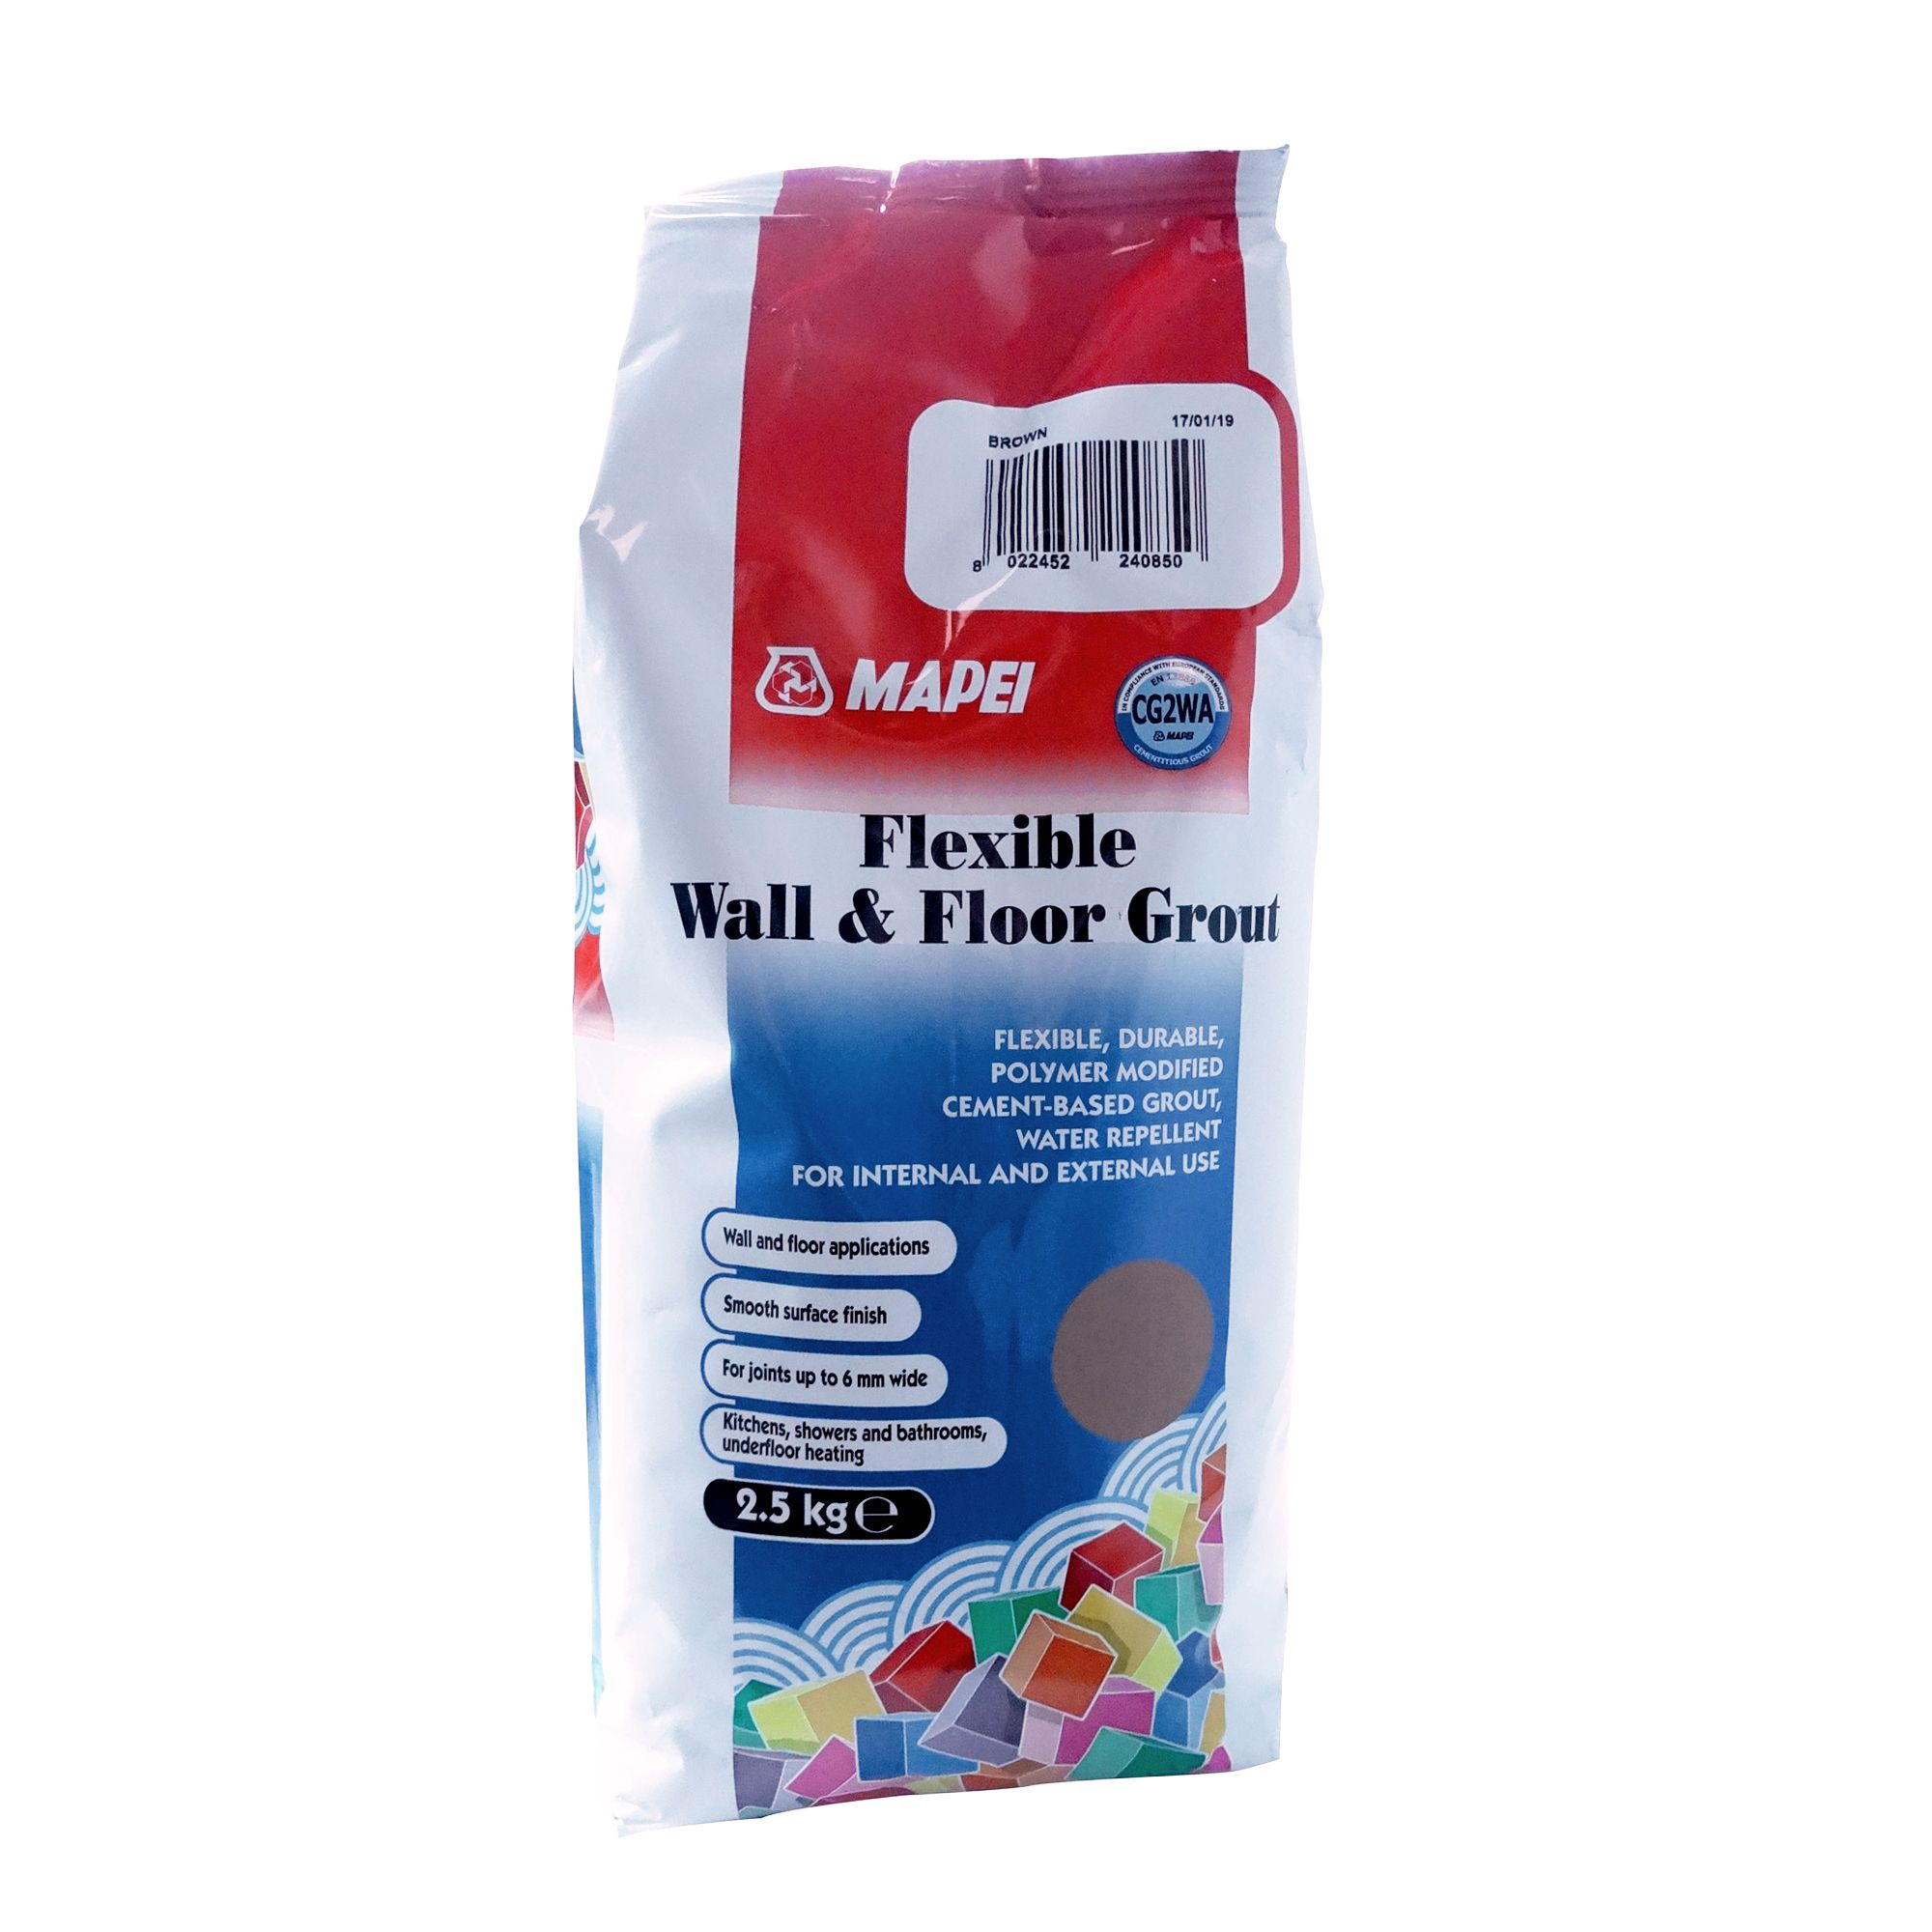 Mapei Brown Floor & wall Tile Grout, 2.5kg | Departments ...